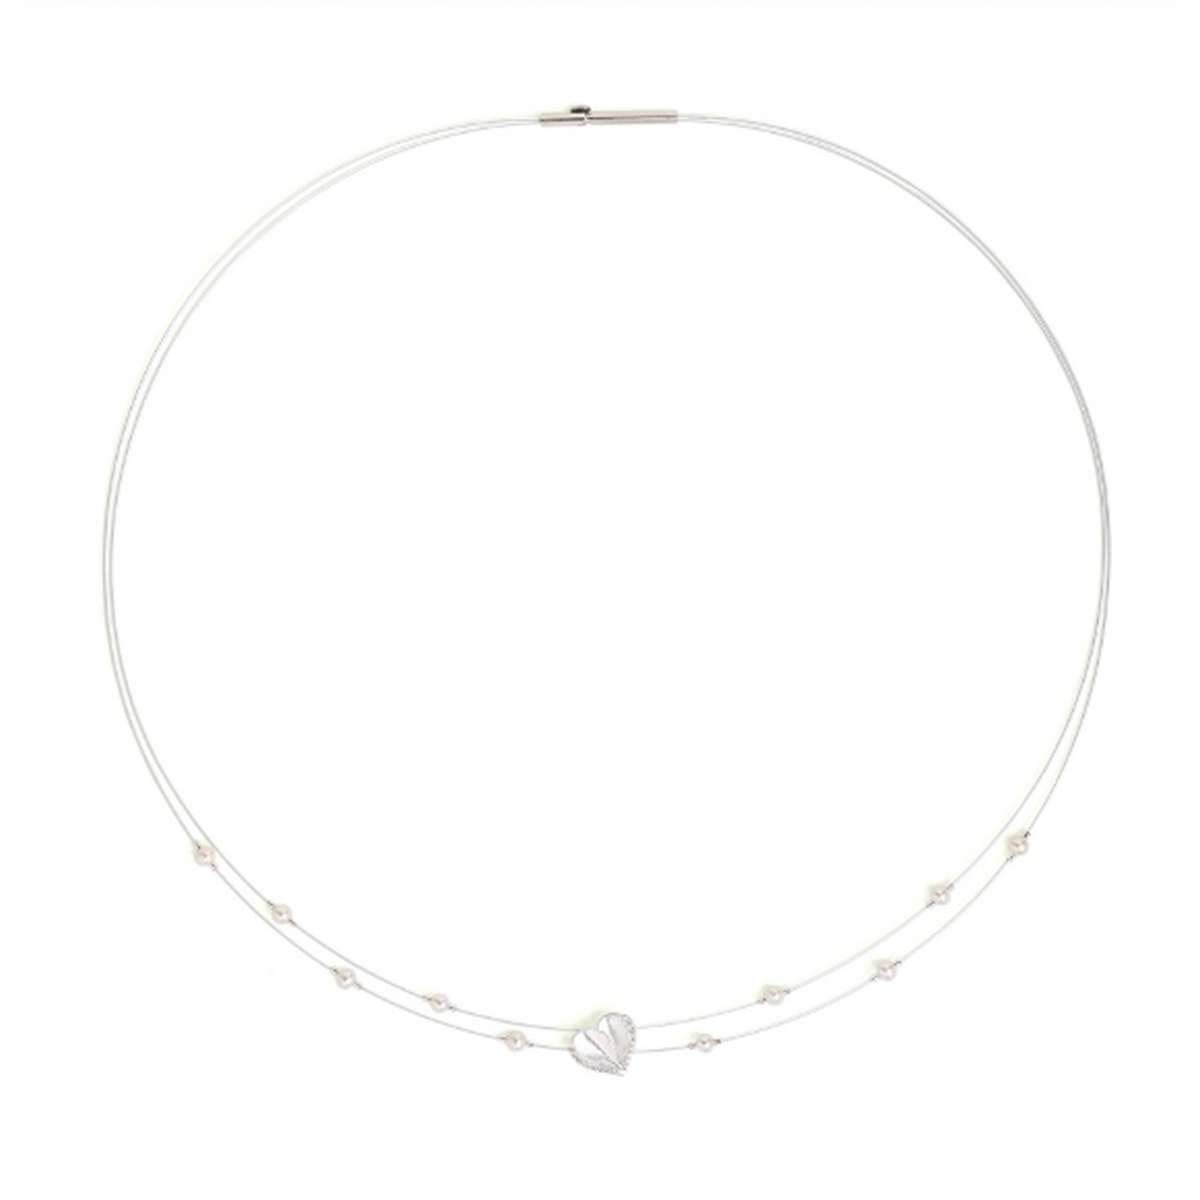 Corelis Freshwater Pearl Necklace - 87104654-Bernd Wolf-Renee Taylor Gallery